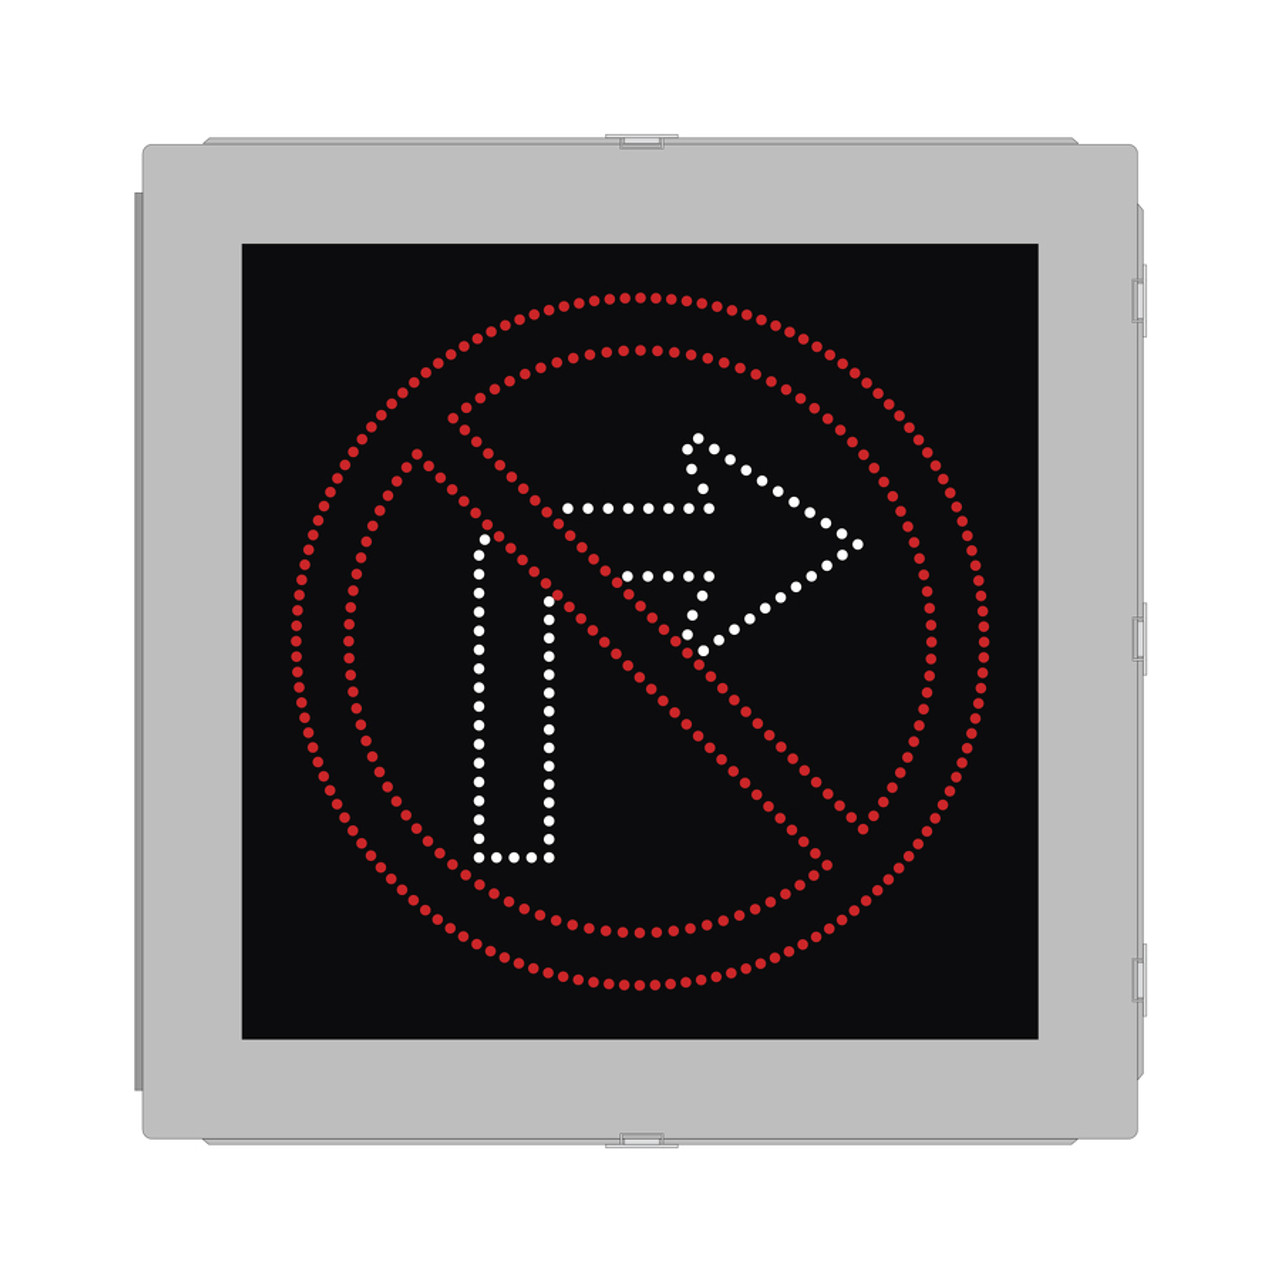 R3 2 Sign >> No Right Turn Led Blank Out Lane Control Fhwa Mutcd Sign R3 1